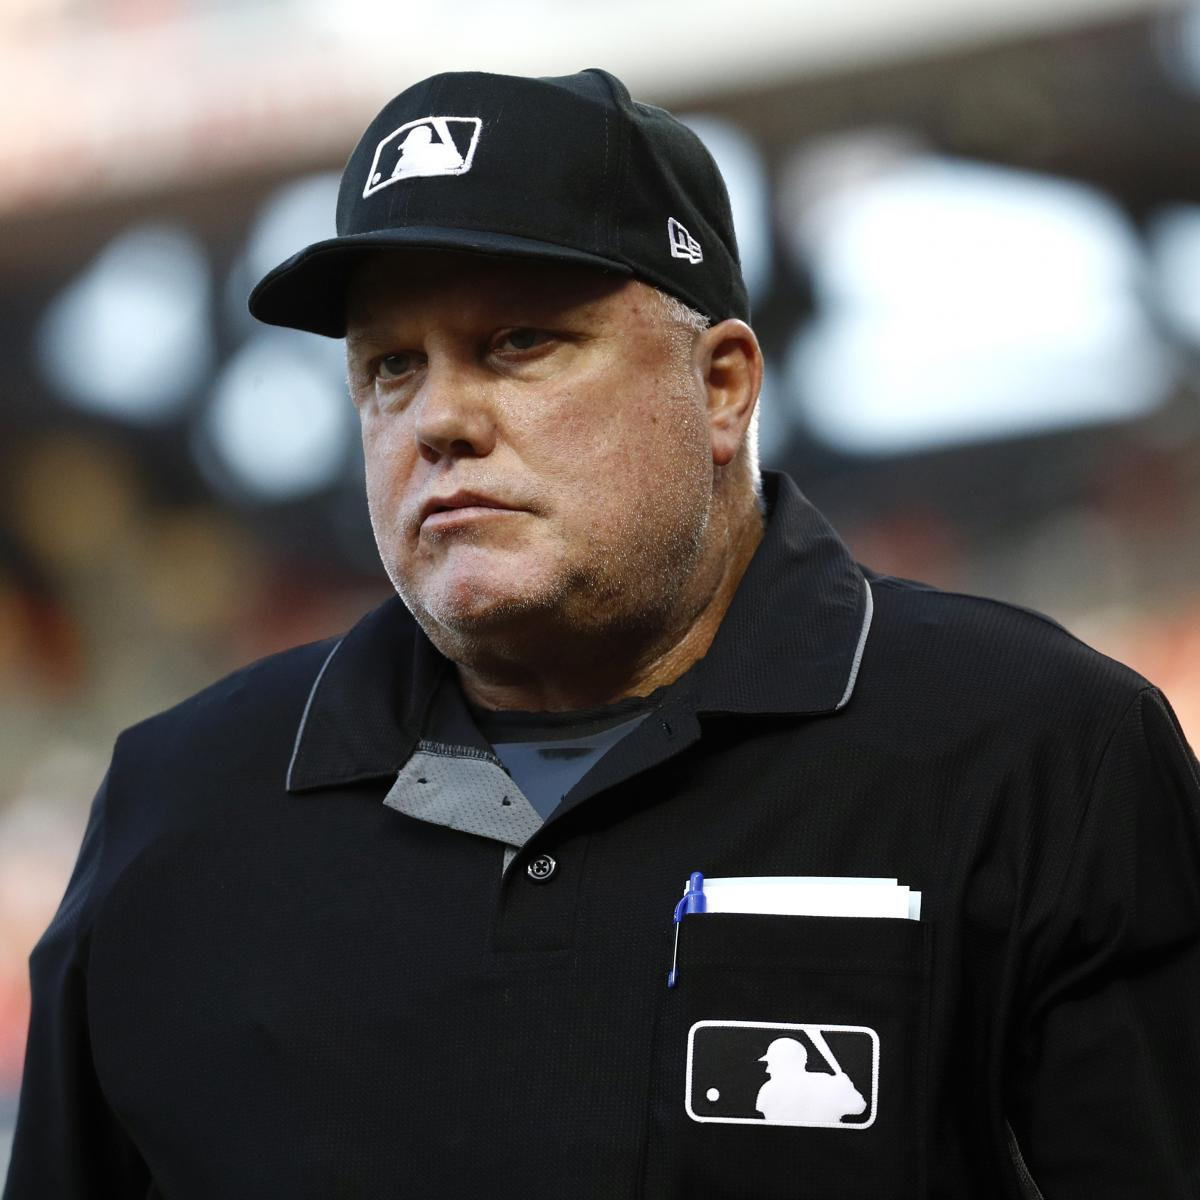 MLB Umpire Brian O'Nora Among 14 Arrested in Ohio Human Trafficking Sting